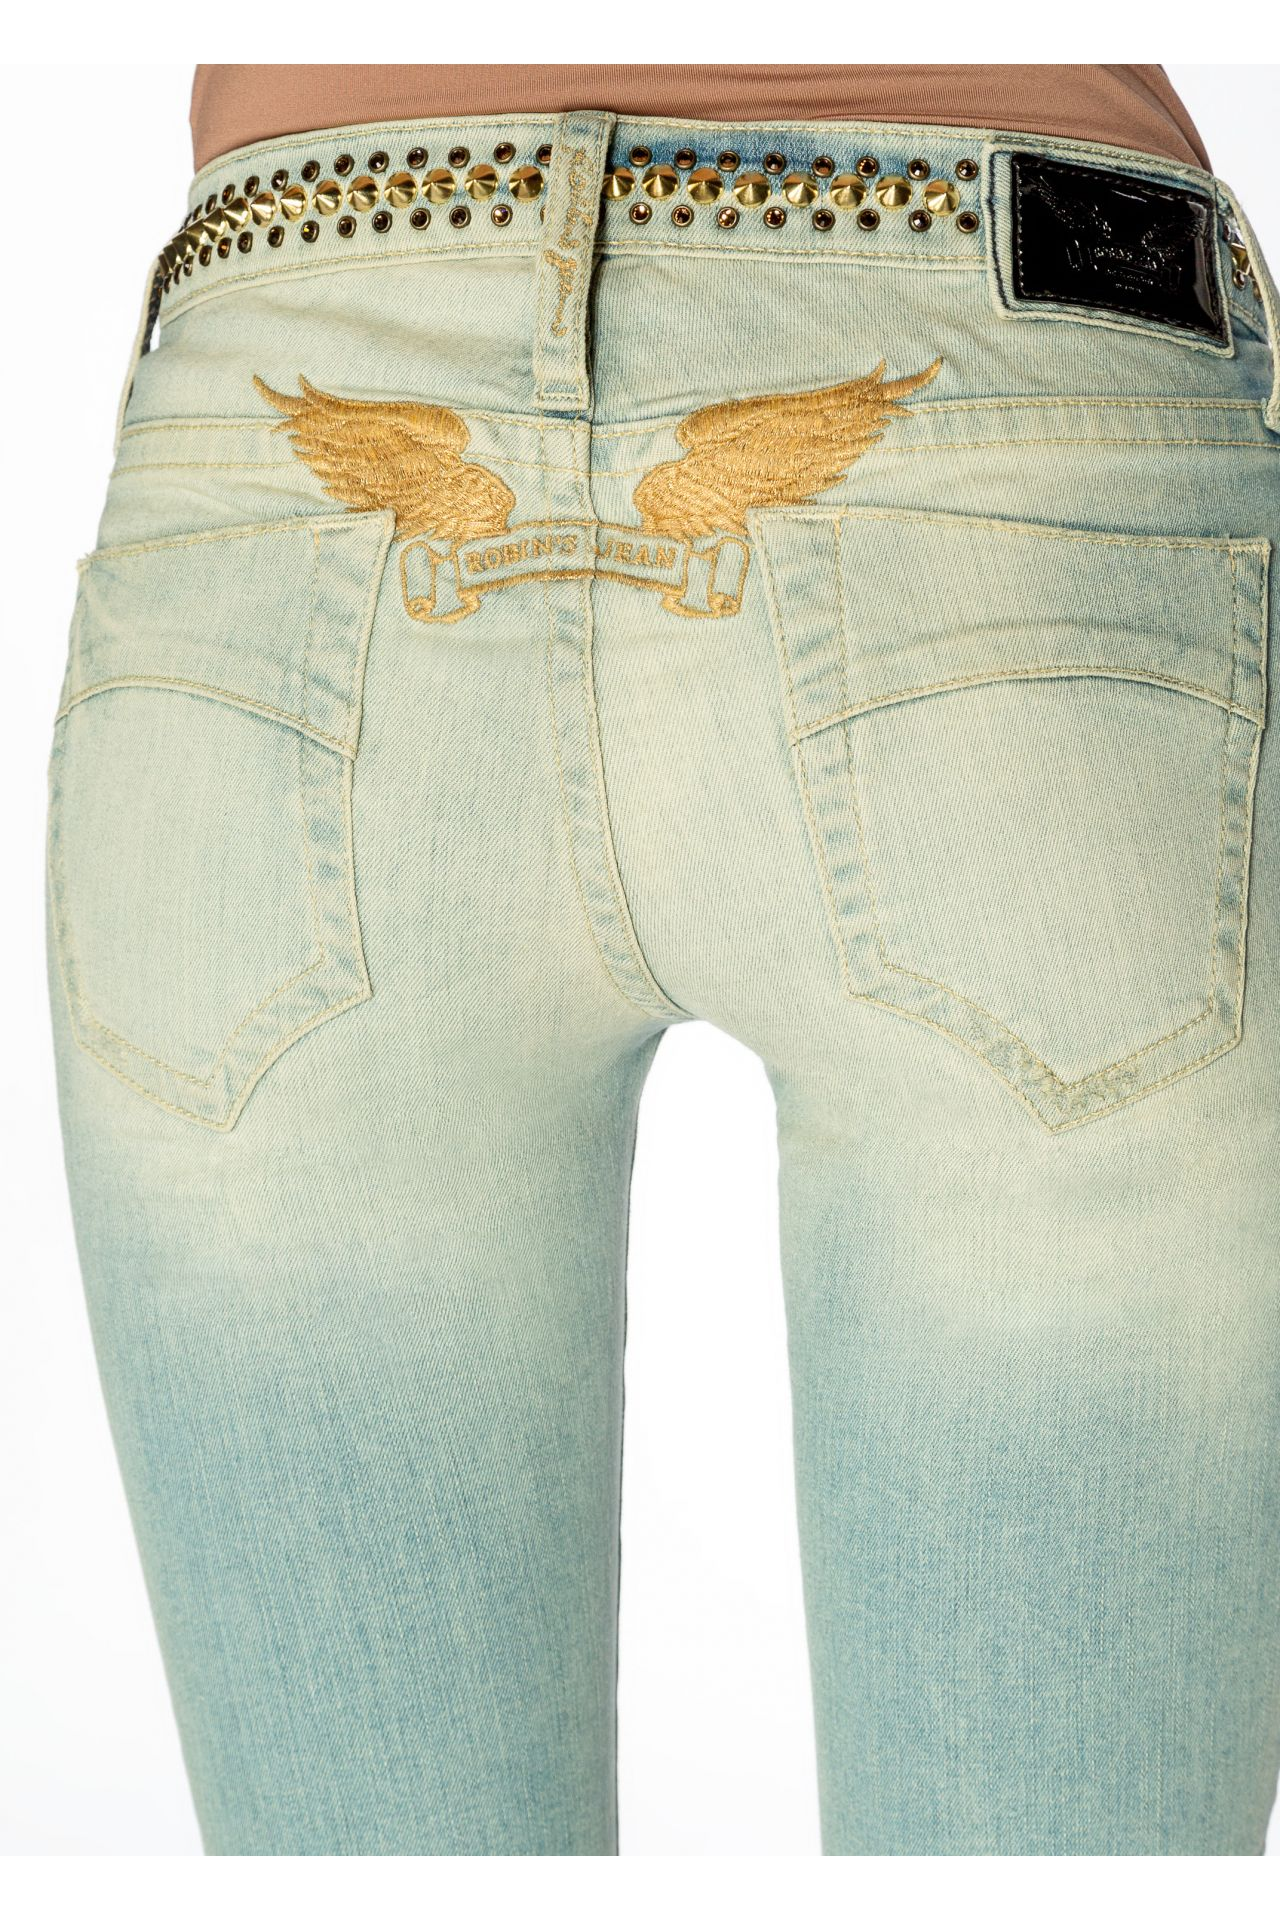 RIPPED SKINNY JEANS WITH GOLD STUDDING